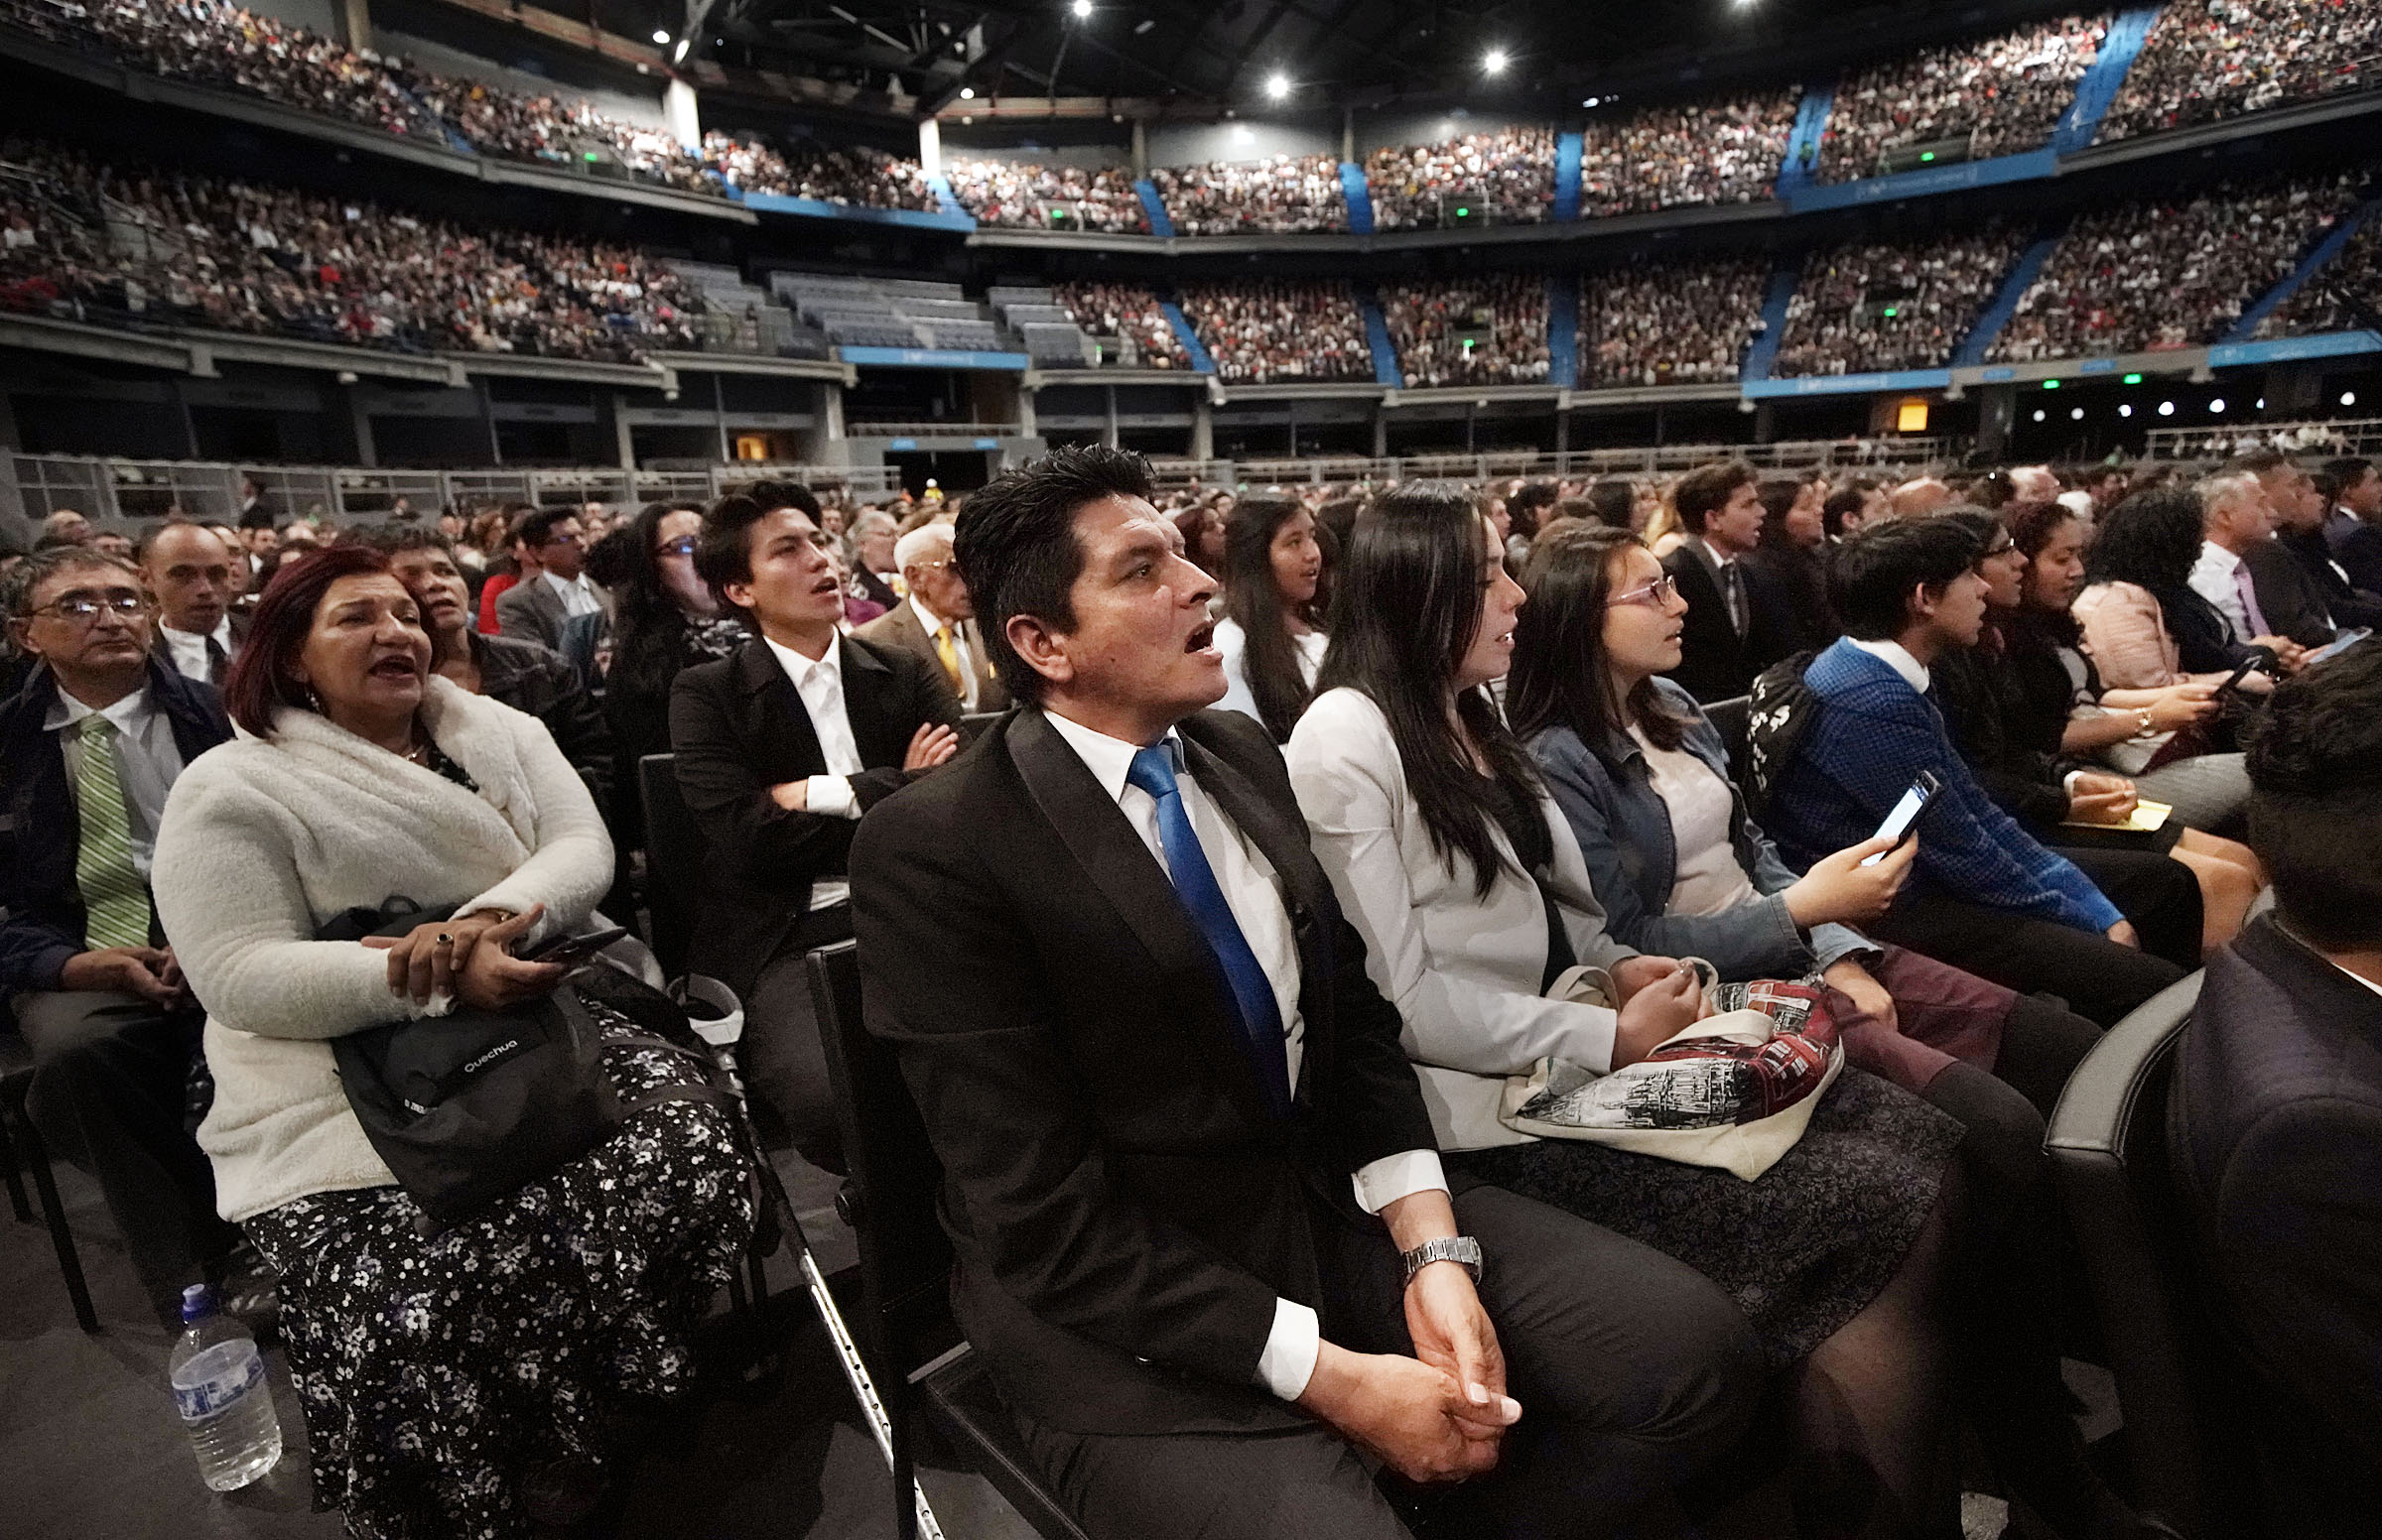 Manuel Pardo joins with his family and those in attendance in singing during a Latin America Ministry Tour devotional in Bogota, Colombia on Sunday, Aug. 25, 2019.